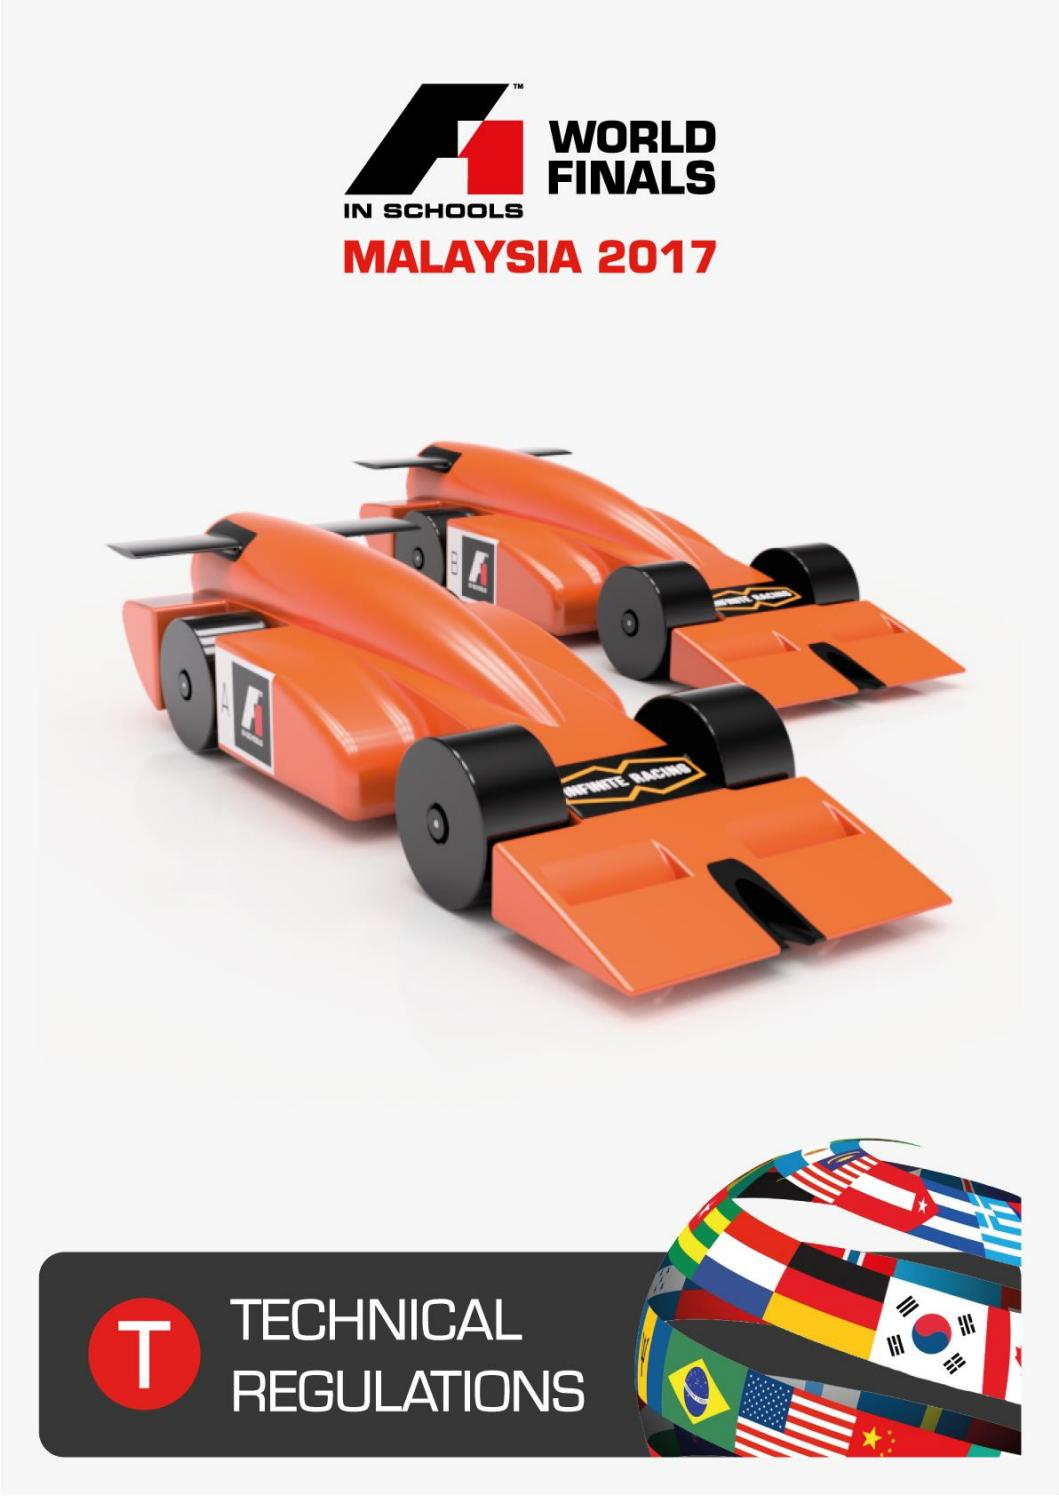 F1 In Schools World Finals Technical Regulations 2017 1 By F1 In Schools Thailand Issuu